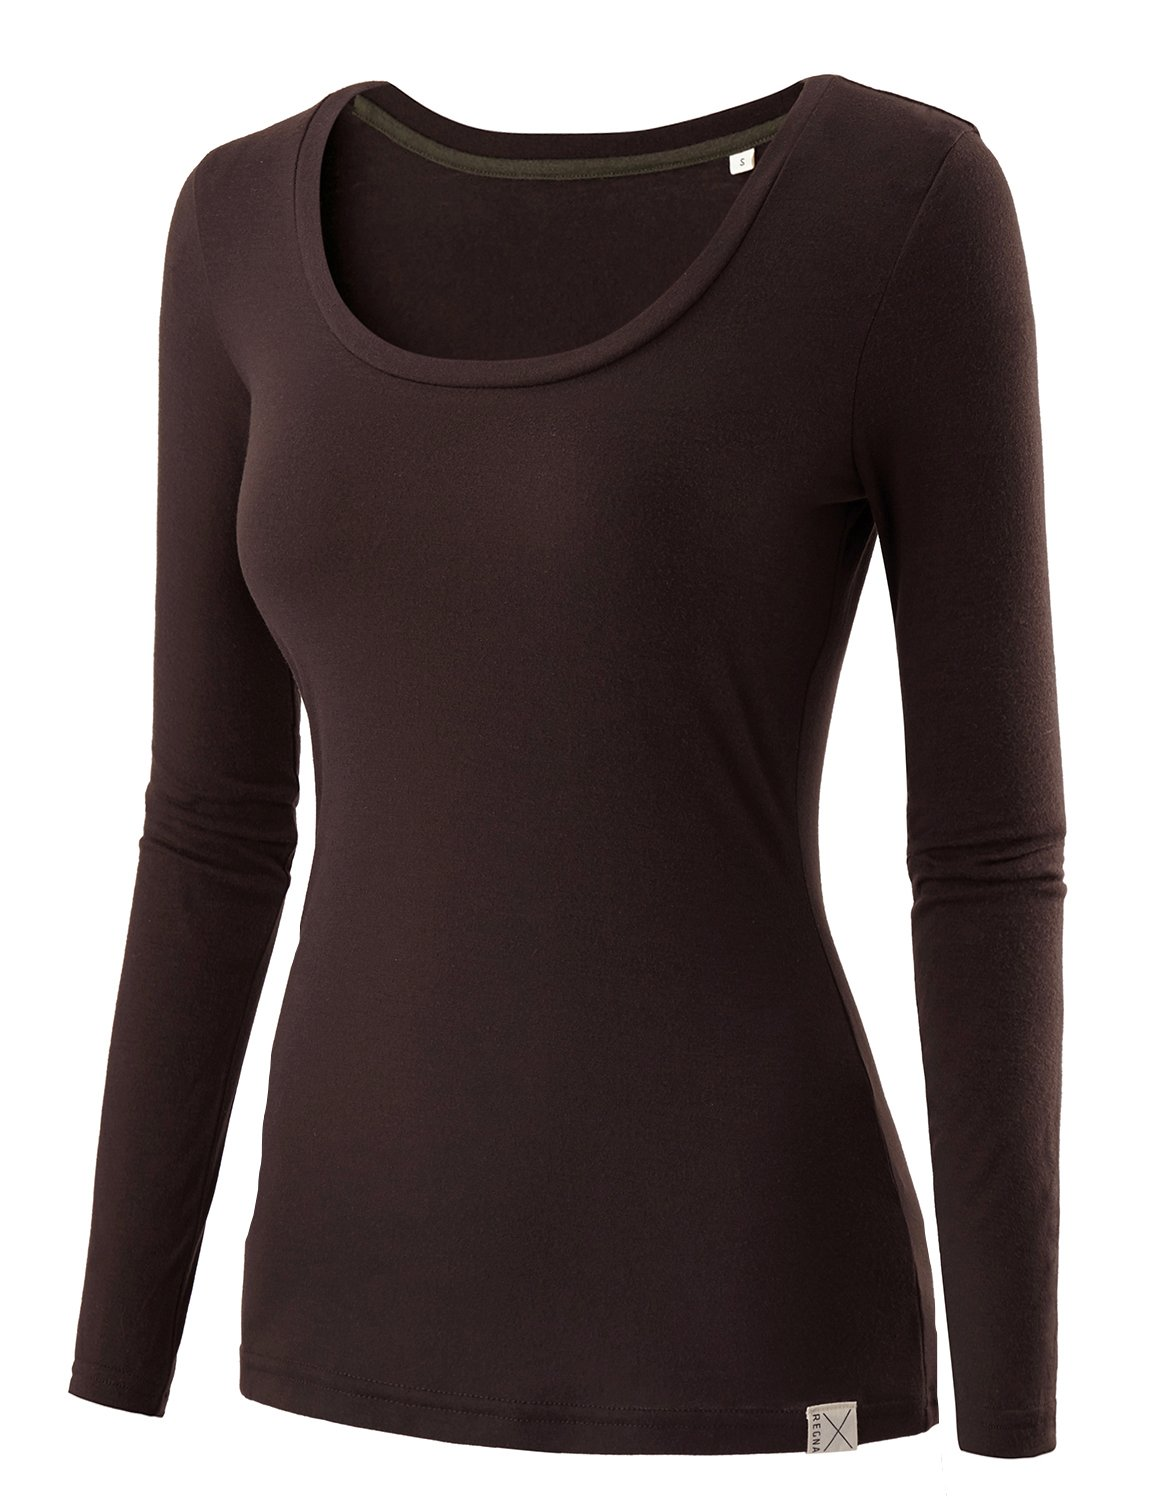 REGNA X Basic women's scoop neck baselayer compression long sleeve T-shirt top, 16241_brown, XX-Large